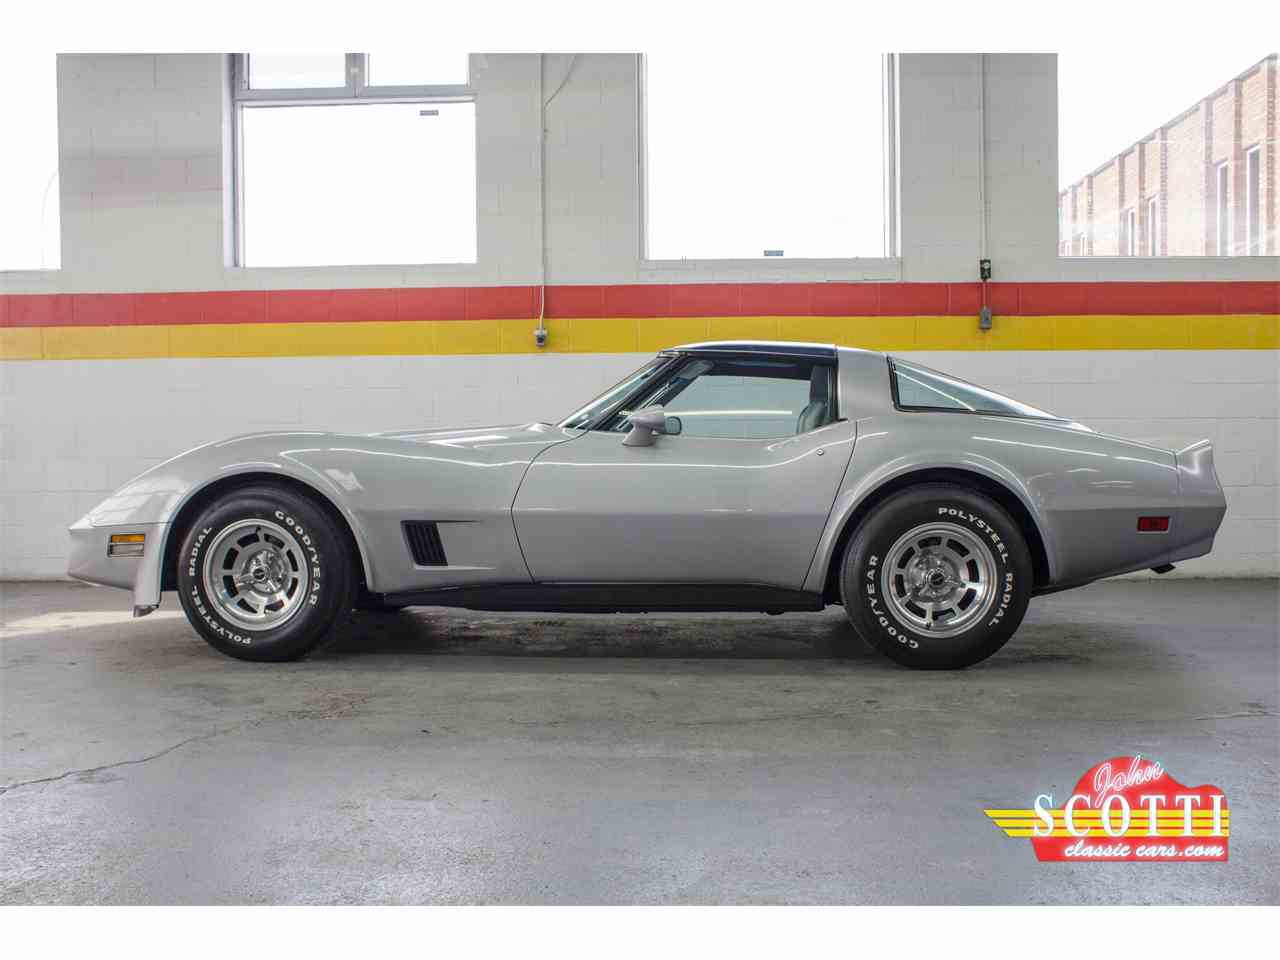 Large Picture of 1981 Corvette located in Quebec - $26,900.00 Offered by John Scotti Classic Cars - KKXV